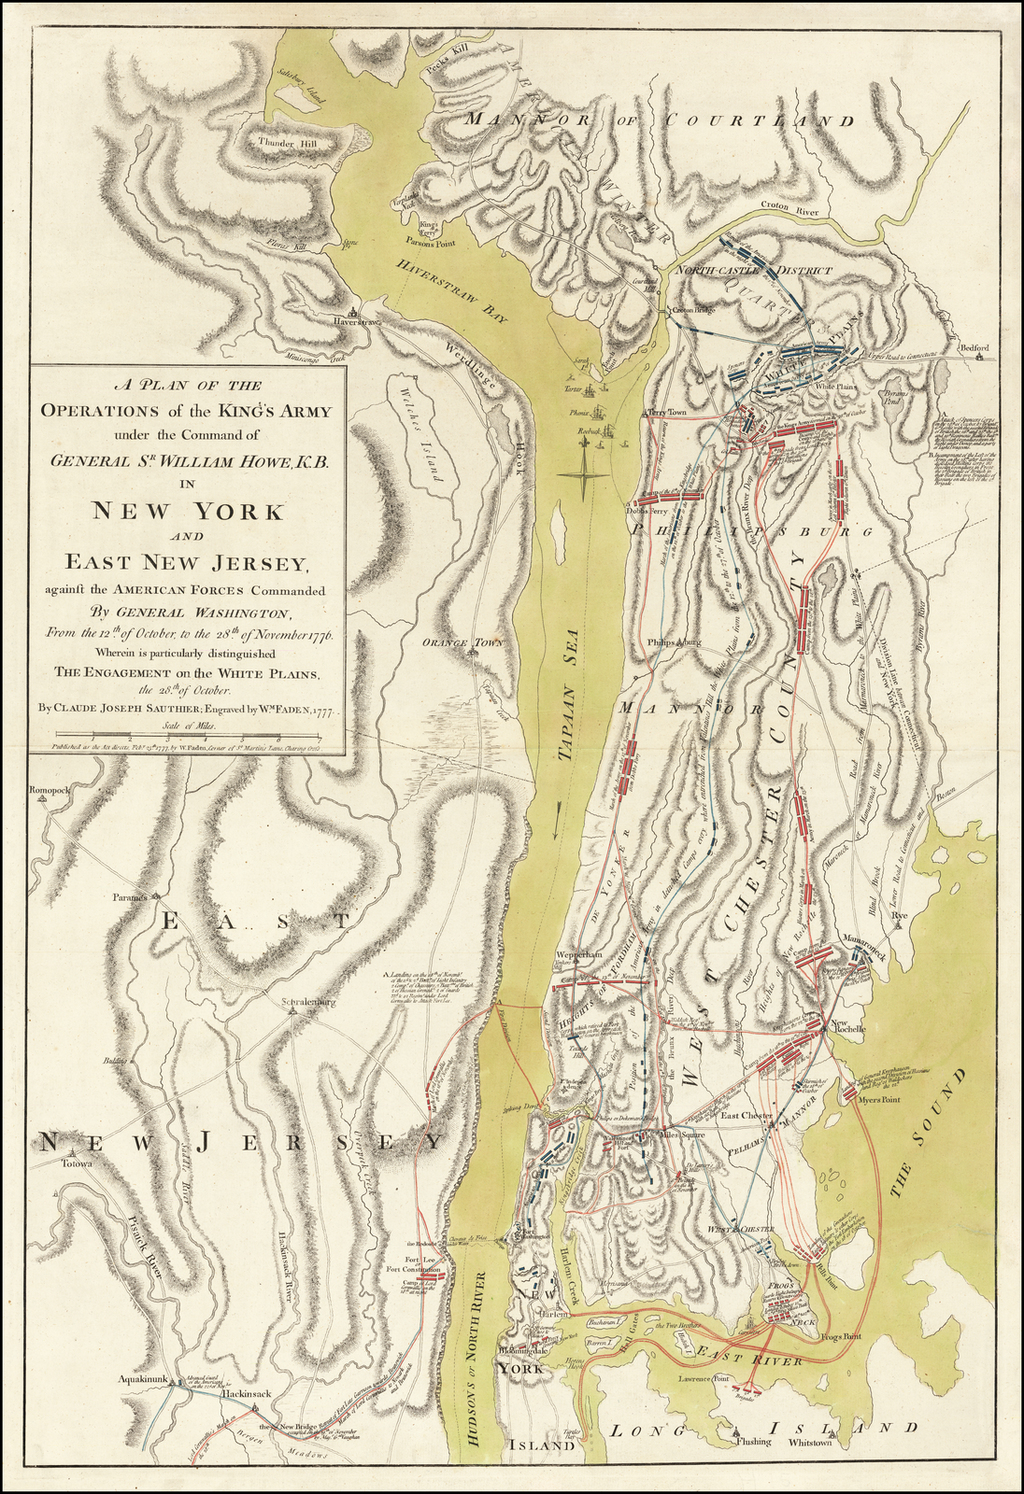 A Plan of the Operations of the King's Army under the Command of General Sr. William Howe, K.B. in New York and East New Jersey, against the American Forces Commanded By General Washington, From the 12th of October to the 28th of November 1776 . . .  By William Faden